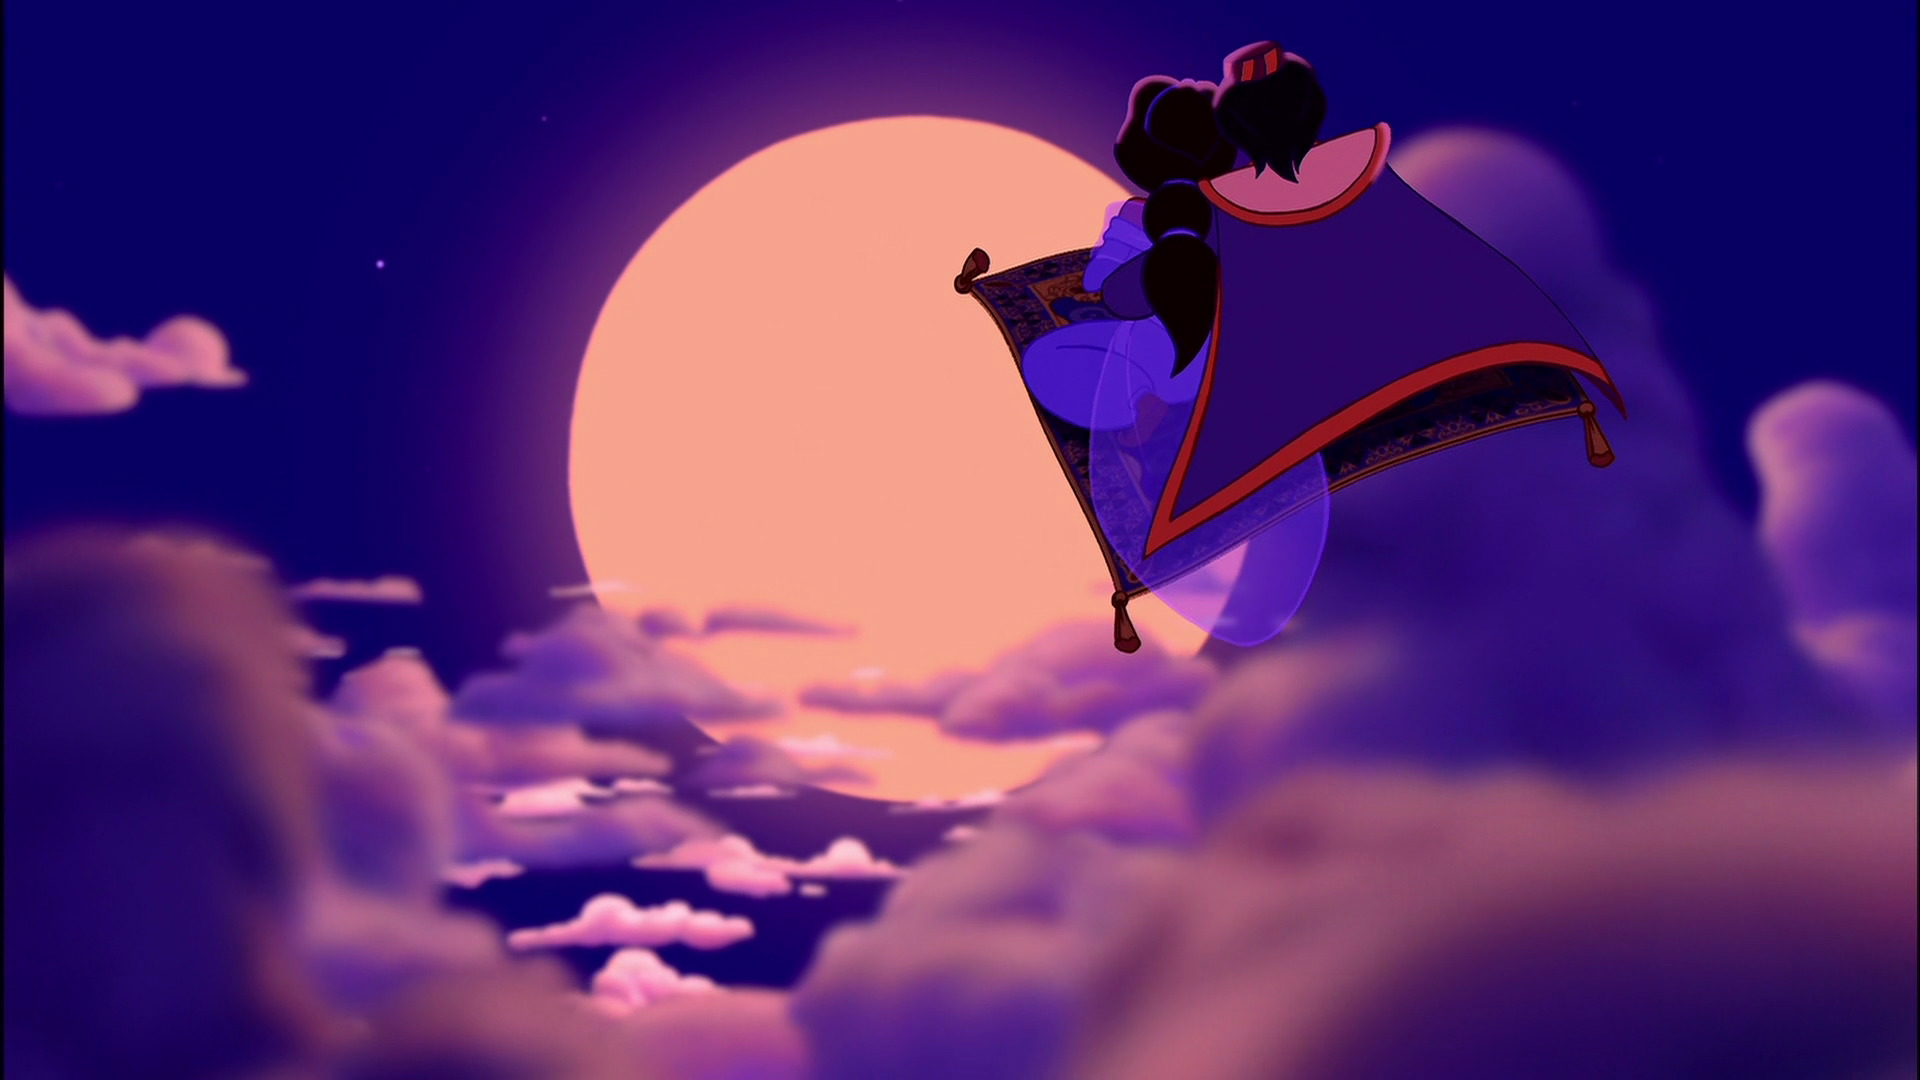 Disney Movies Hd Wallpapers: Animation Screencaps